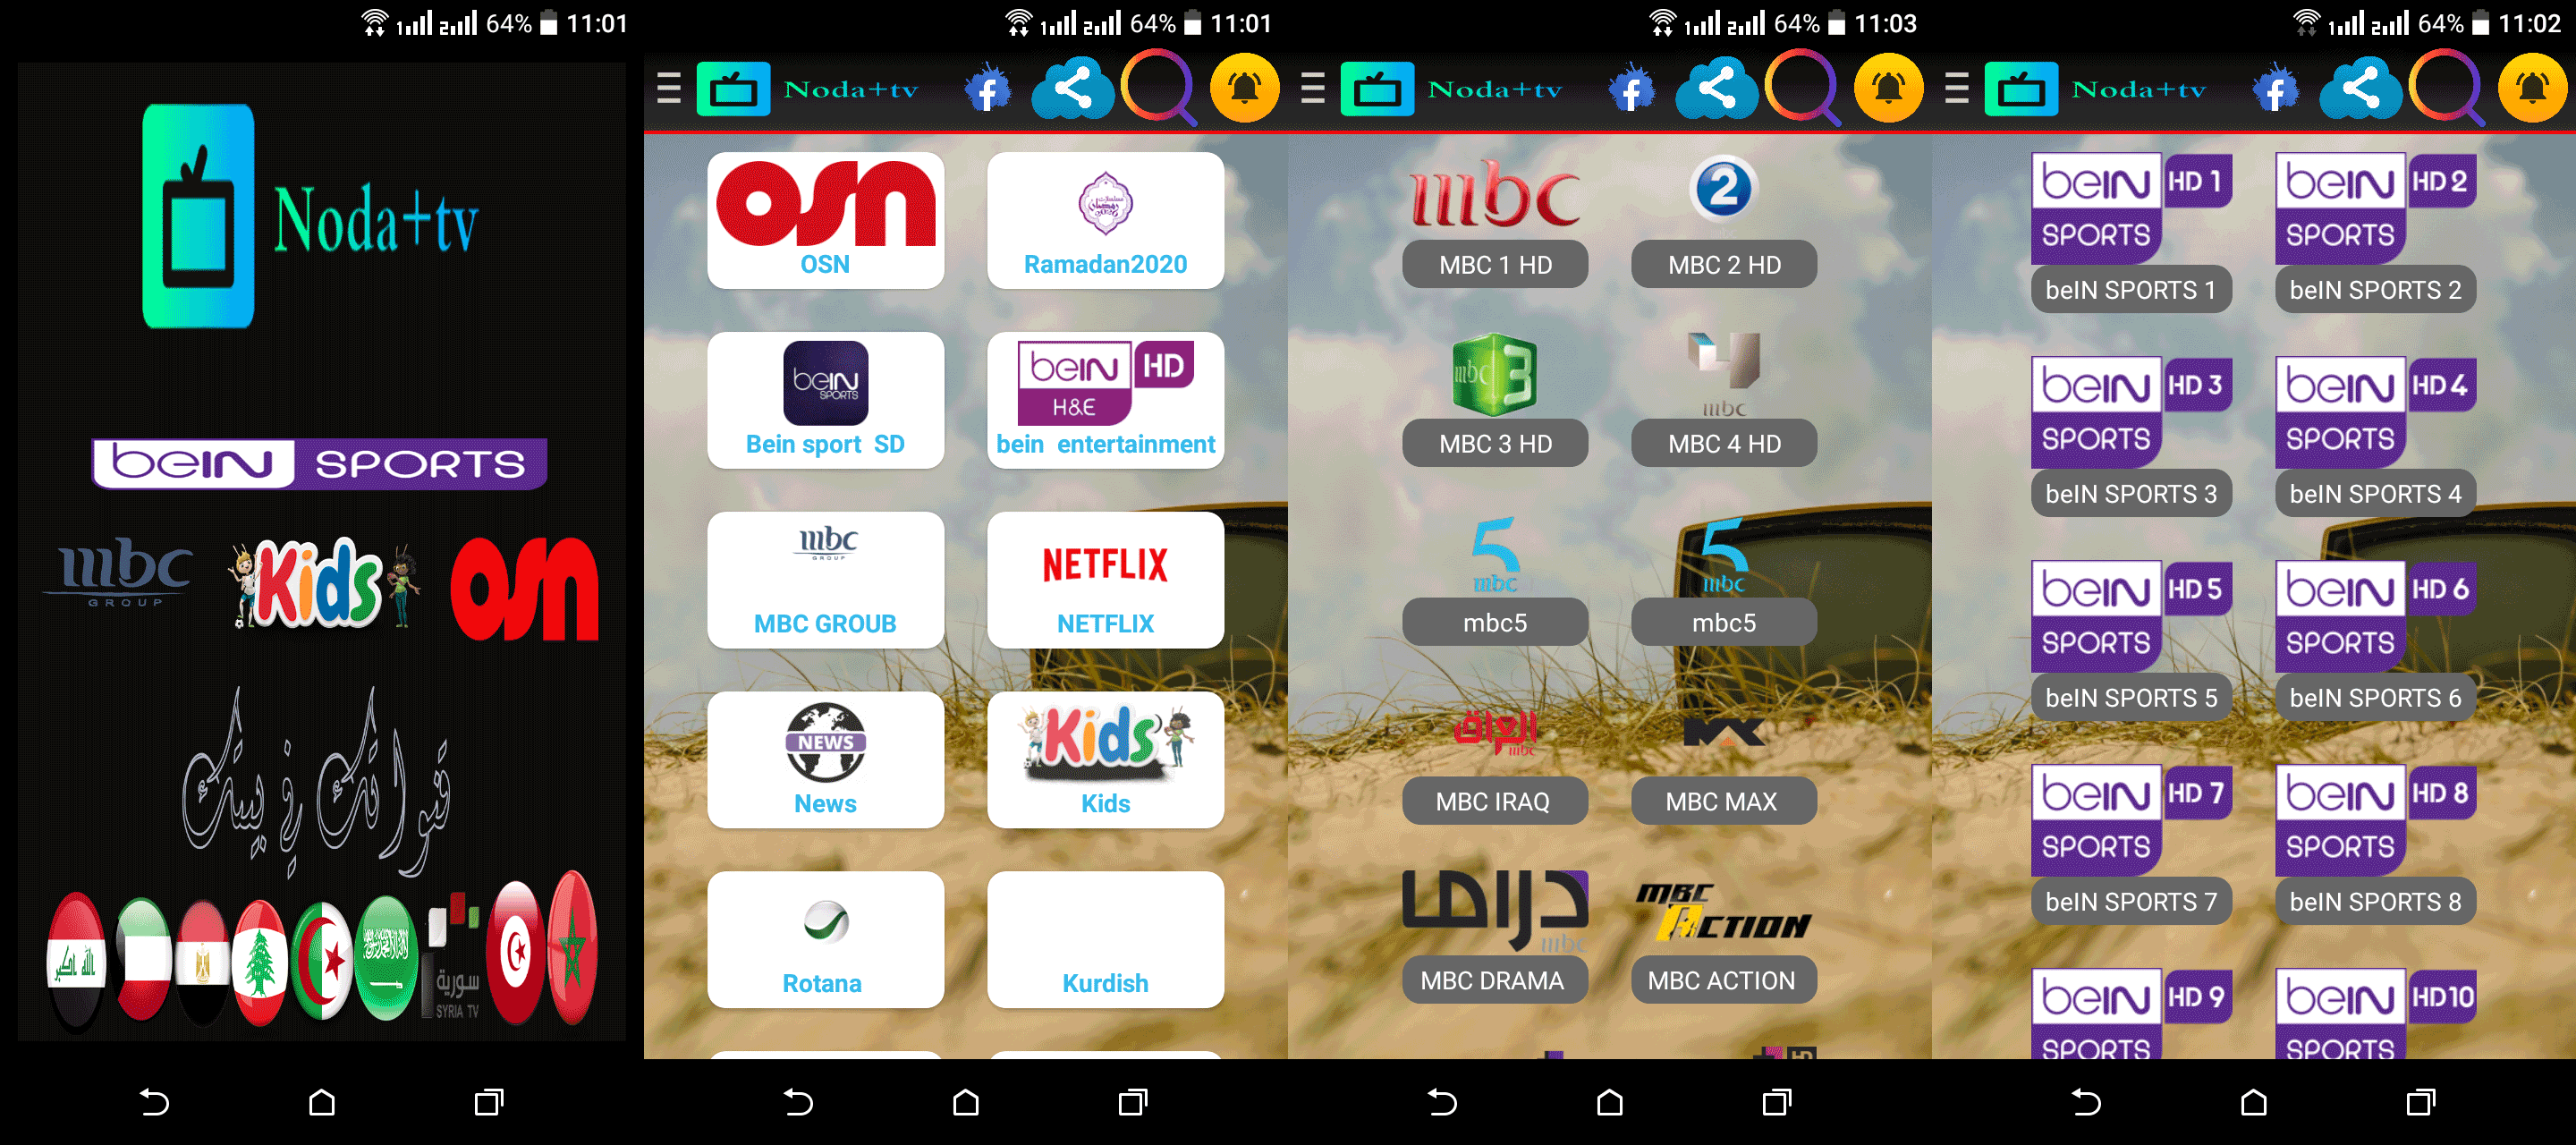 Noda+Tv v1 APK [Latest] 2020 2